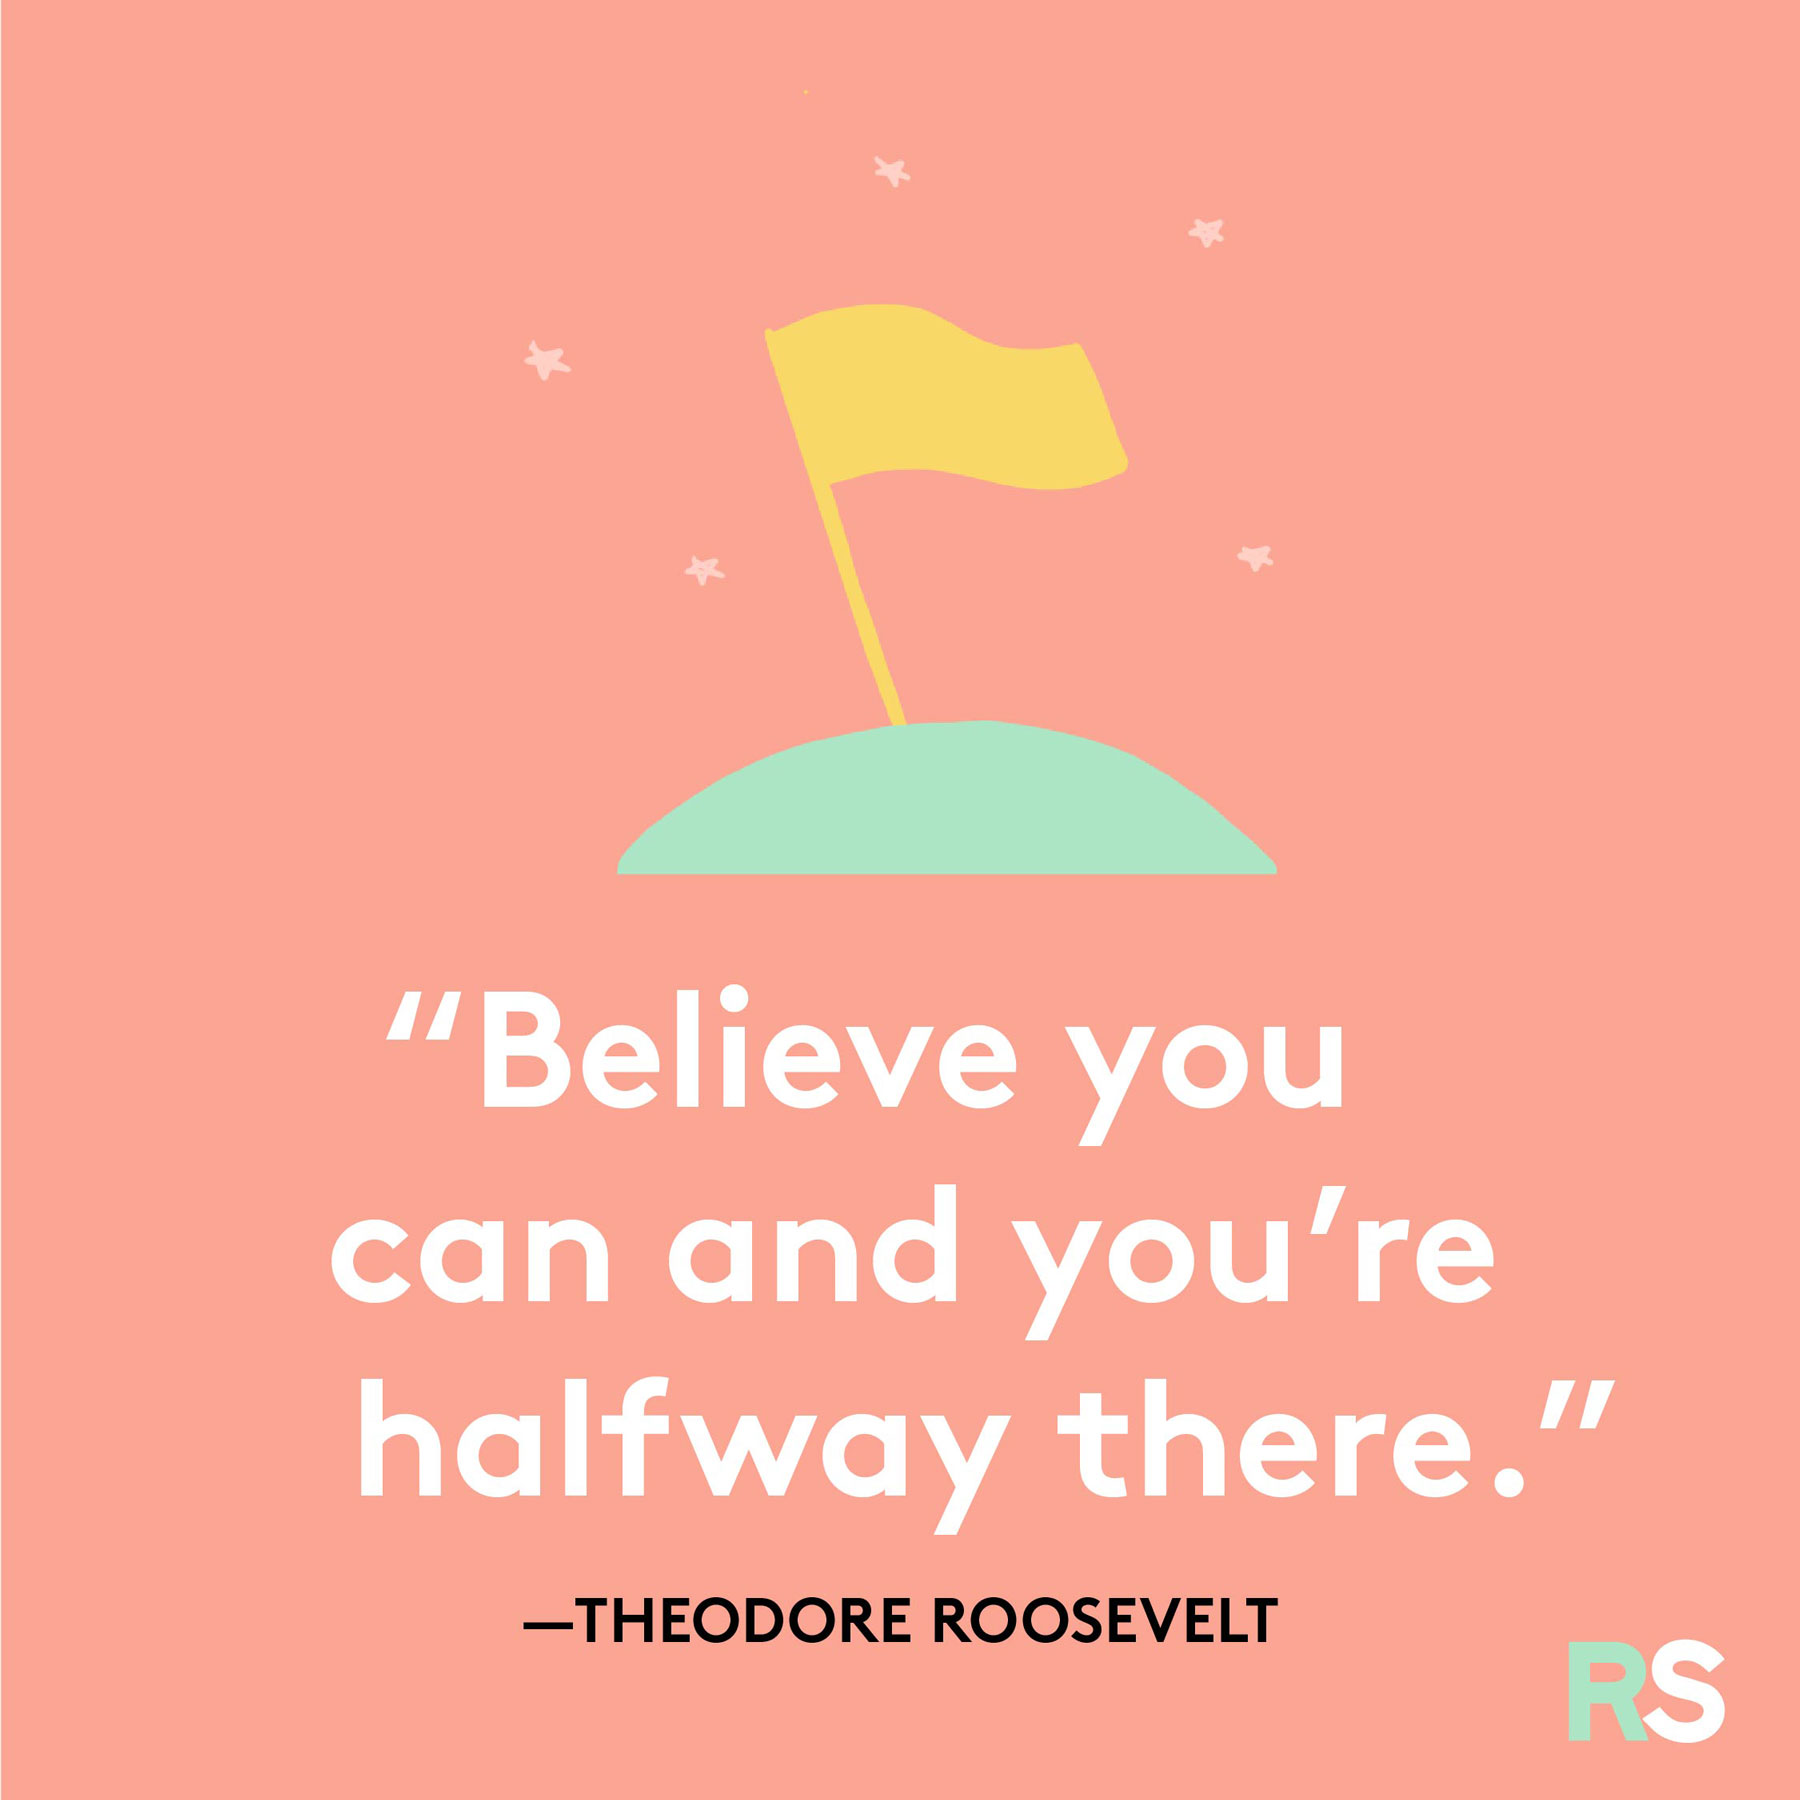 53 Positive Quotes Motivational Inspirational Quotes And Captions Real Simple Remember the ones that you like and also share them you can have results or excuses, not both. 53 positive quotes motivational